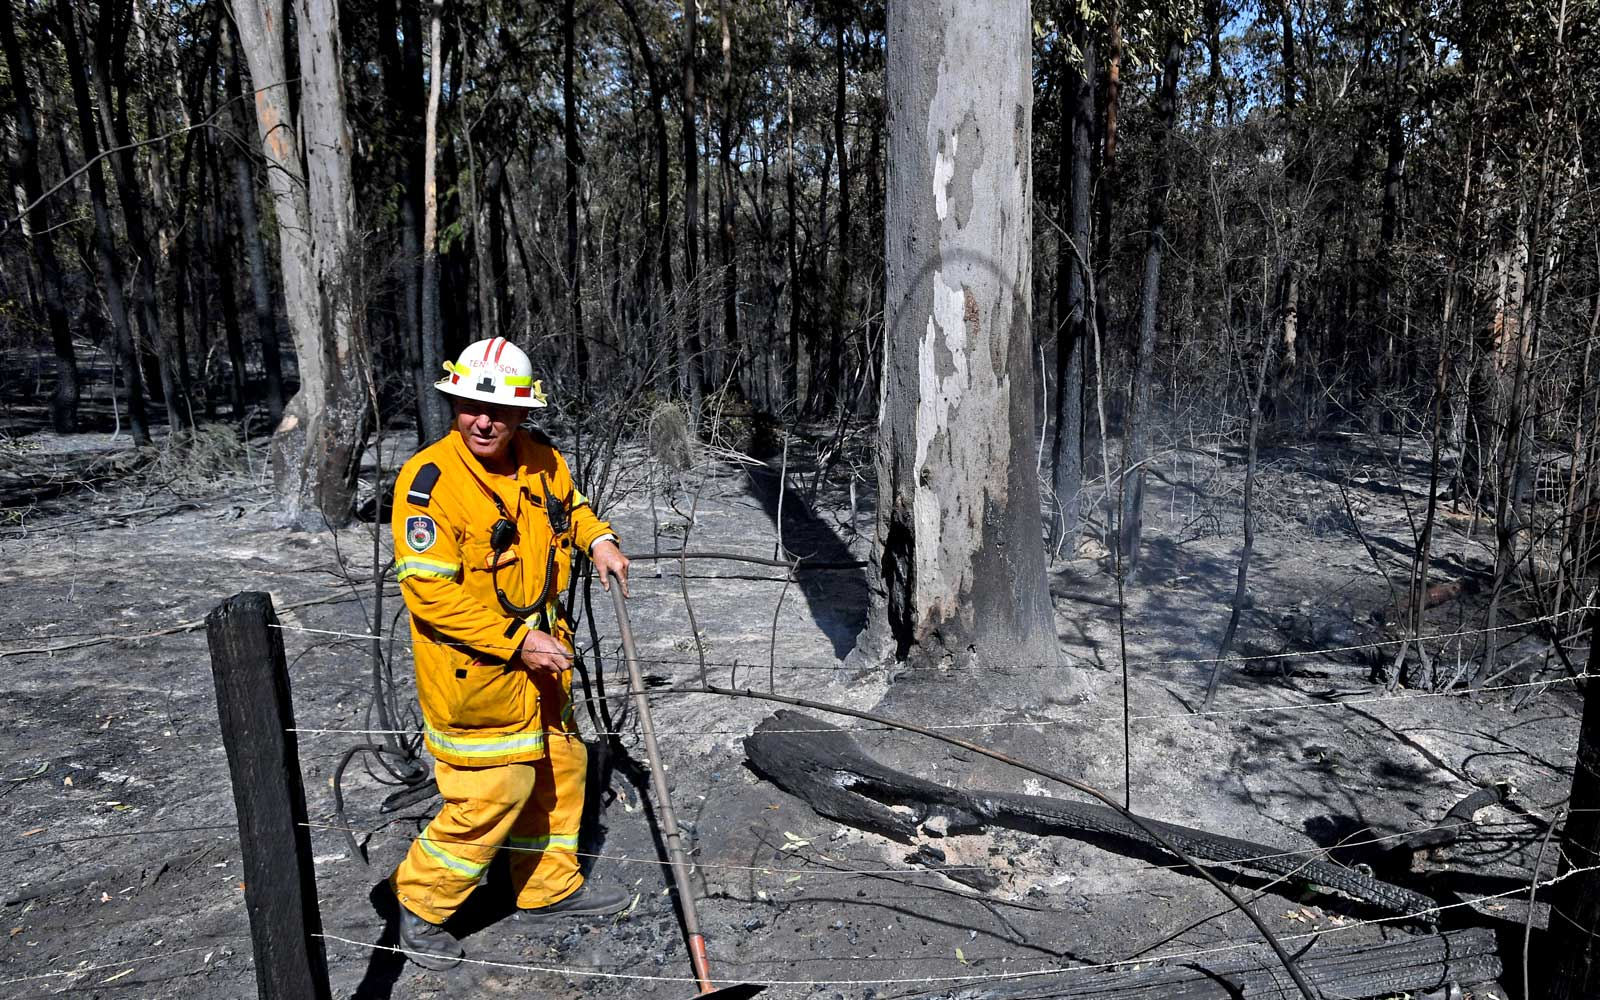 A Rural Fire Service (RFS) firefighter walks through the perimeter of an extinguished blaze in the township of East Kurrajong, on October 26, 2019 near Sydney, Australia.